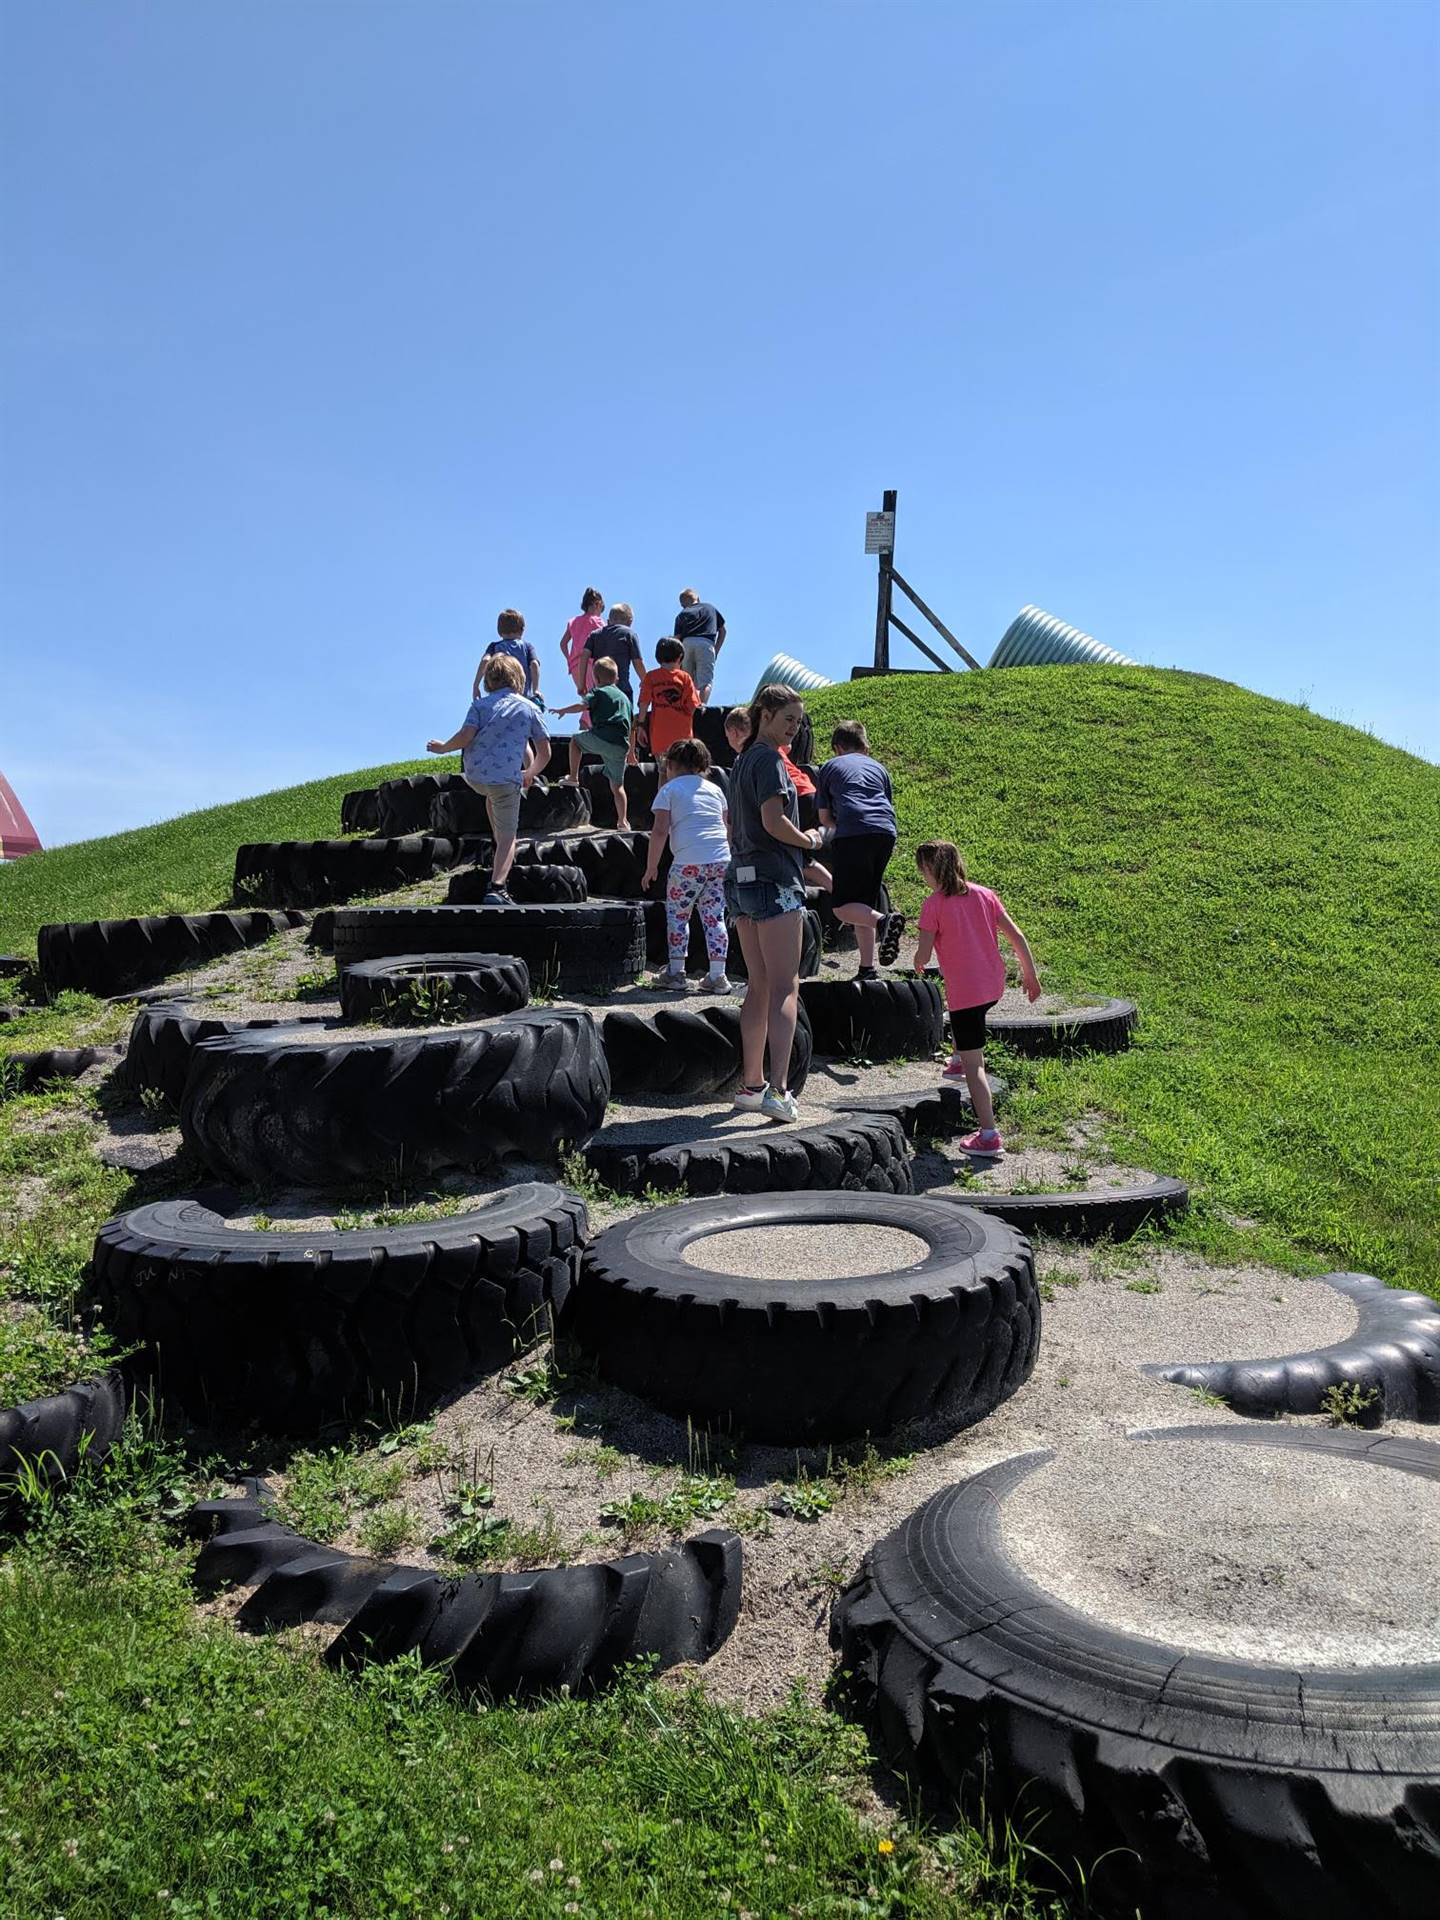 Students walking up a hill paved with tires